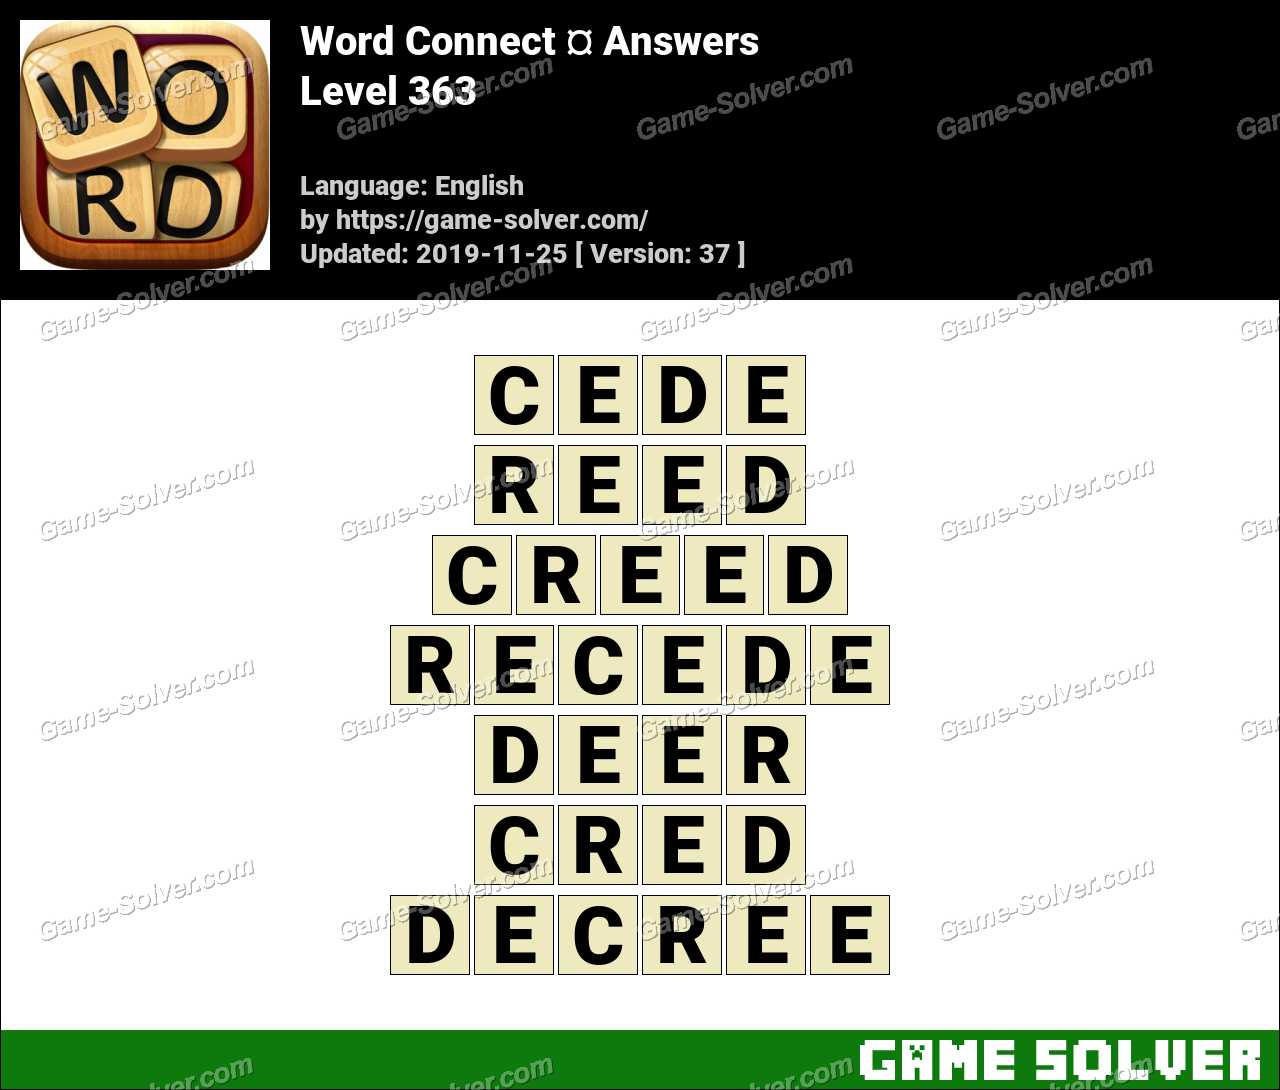 Word Connect Level 363 Answers